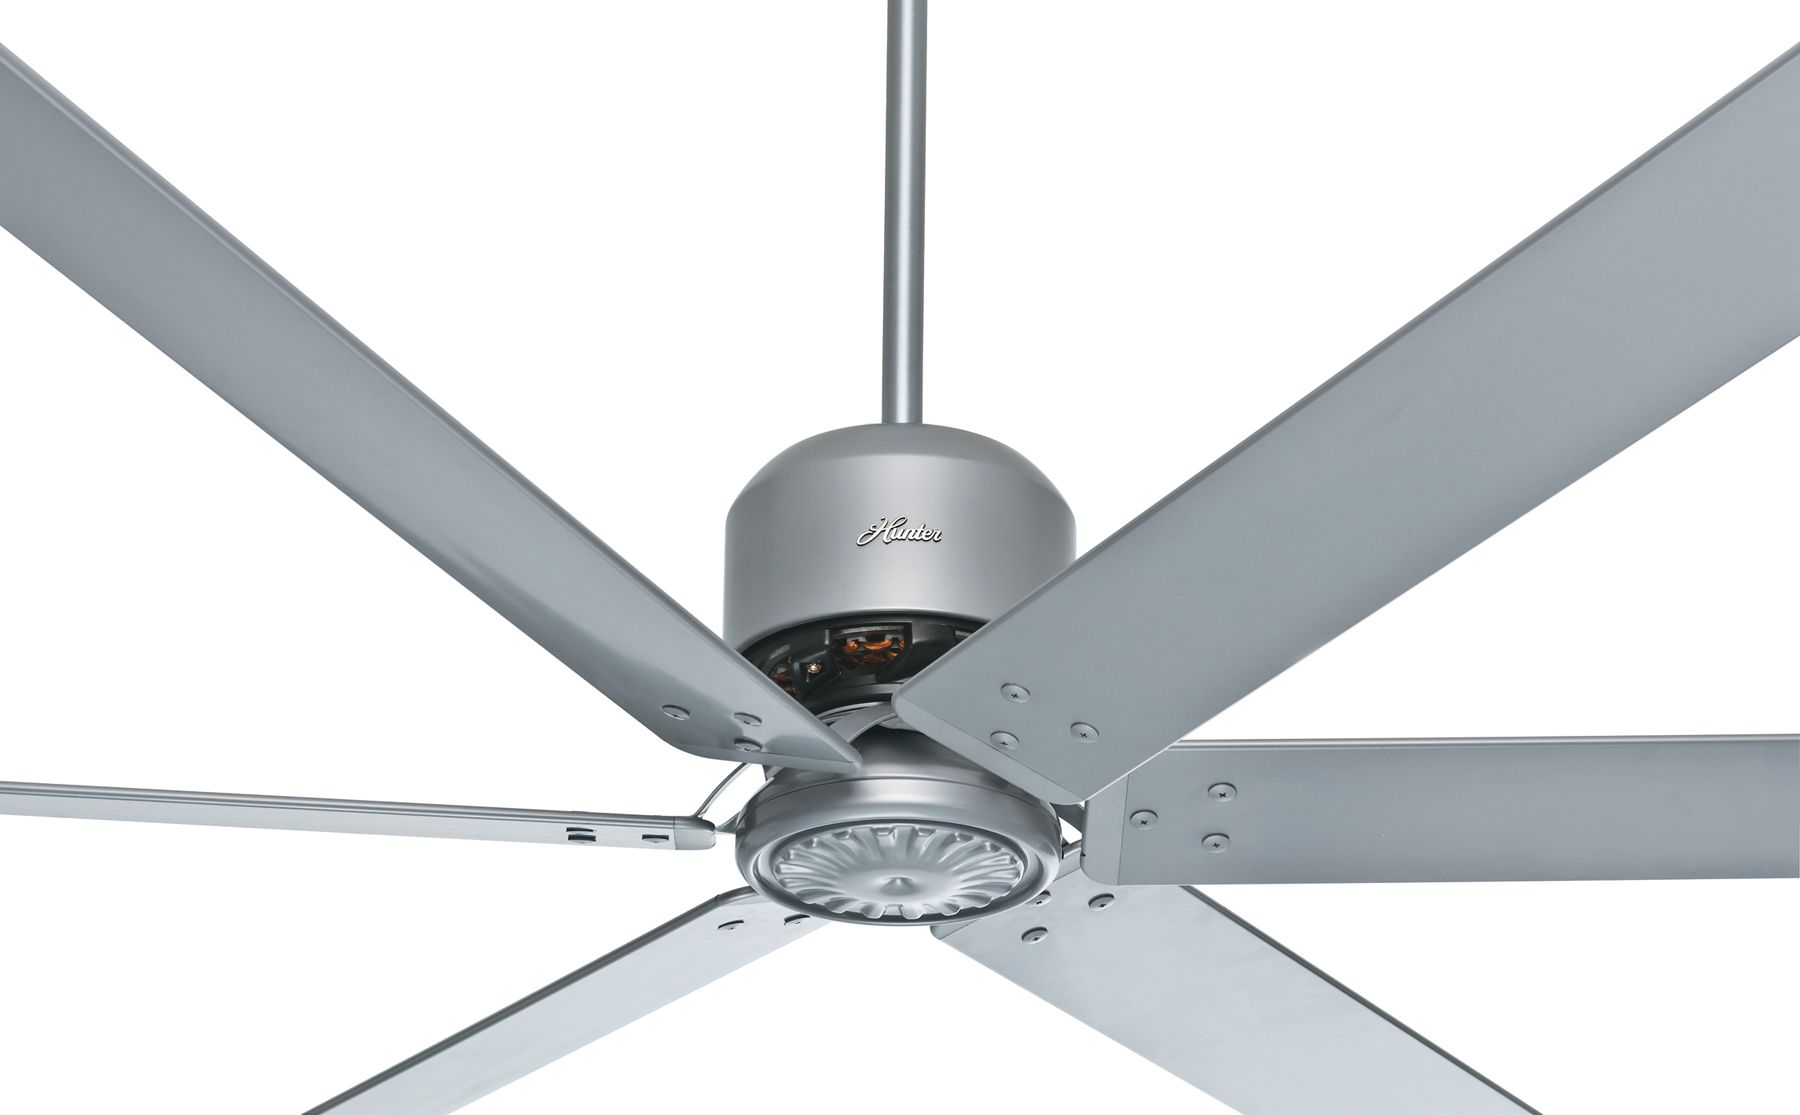 Introducing The 96 Industrial Ceiling Fan It Is Designed To